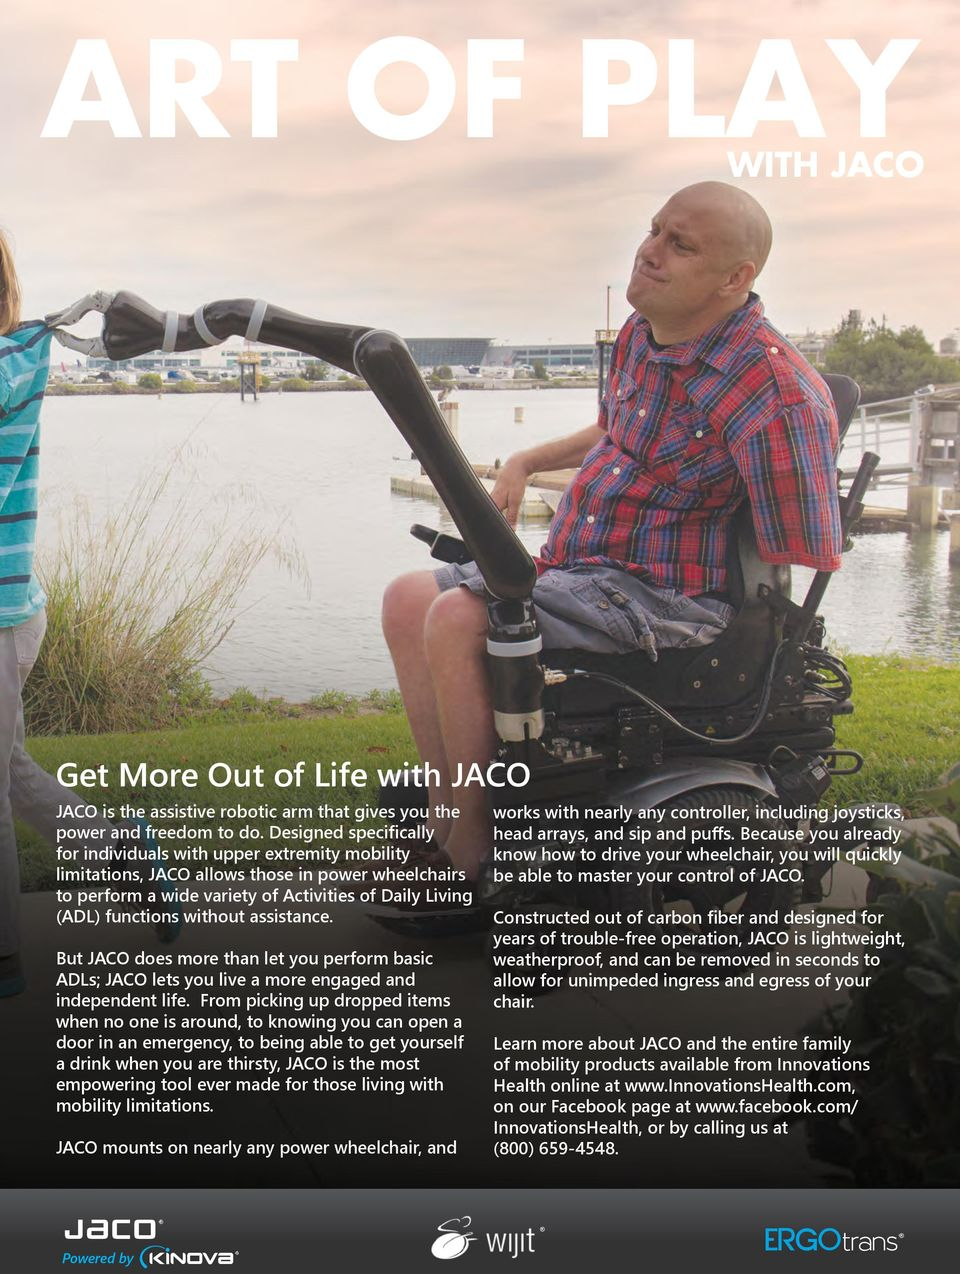 assistance. But JACO does more than let you perform basic ADLs; JACO lets you live a more engaged and independent life.